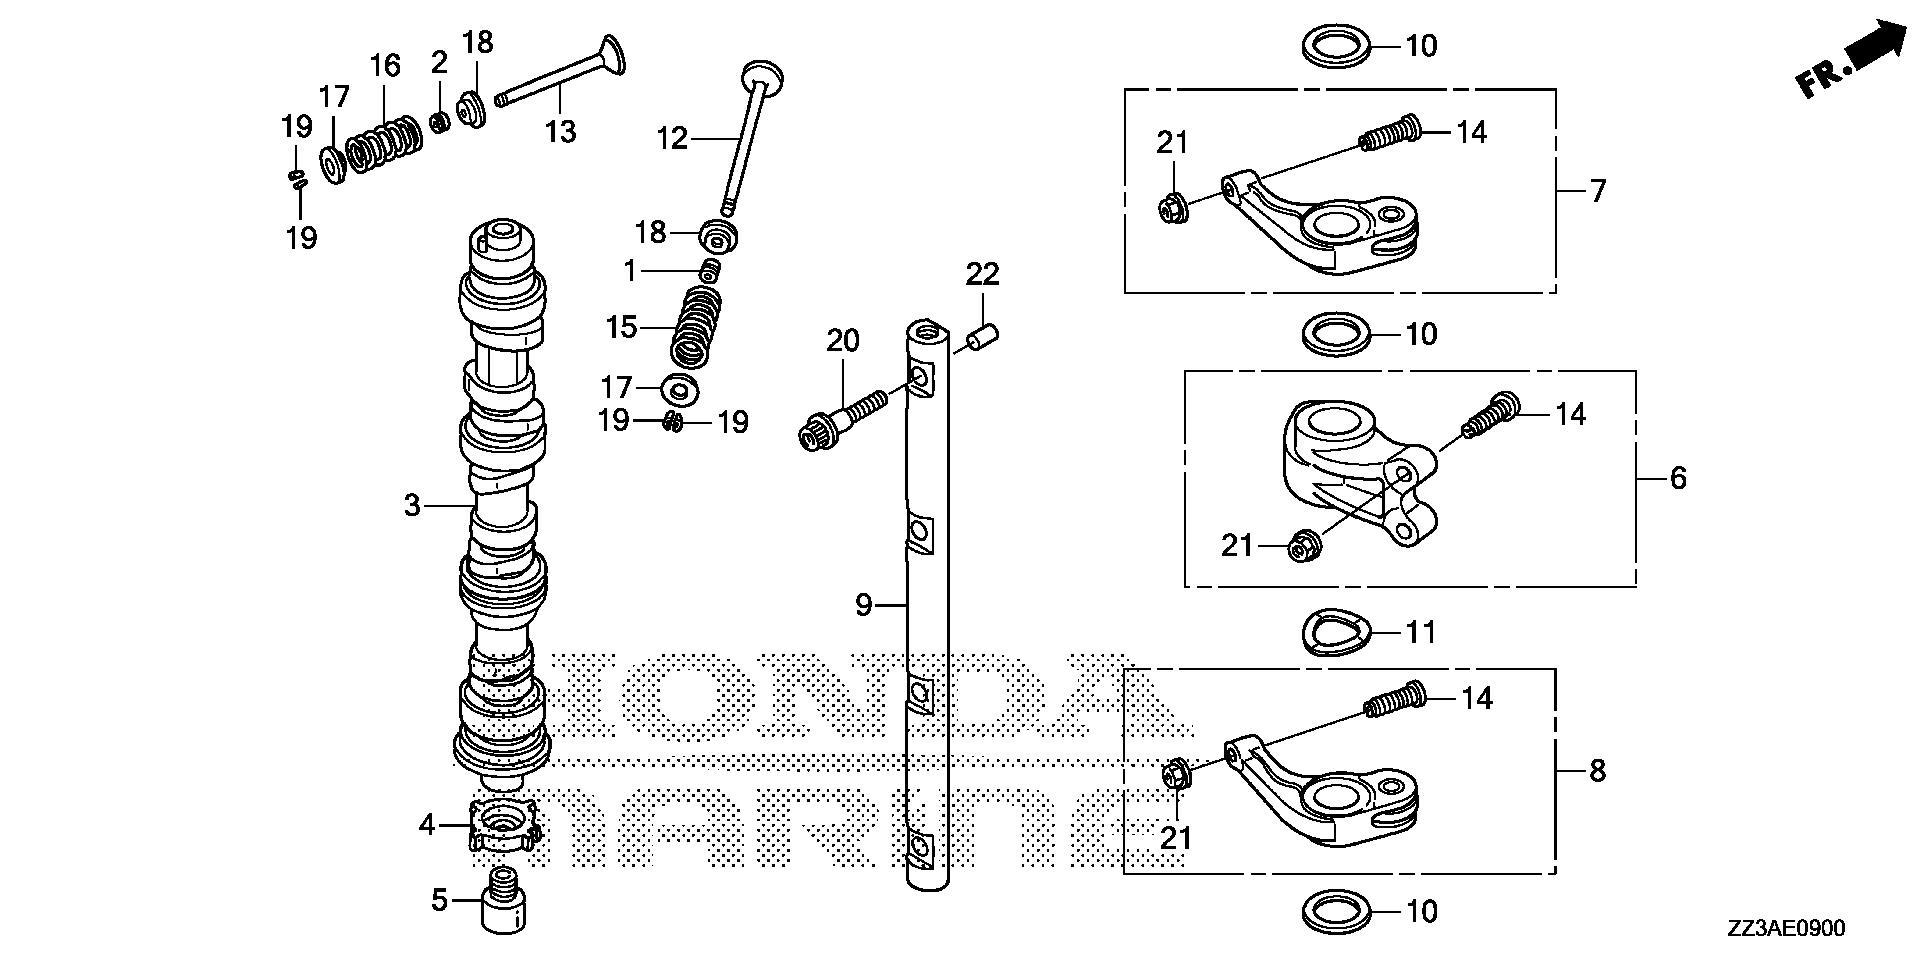 Honda Marine Parts Look Up Official Site Bf60 Wiring Diagram Camshaft